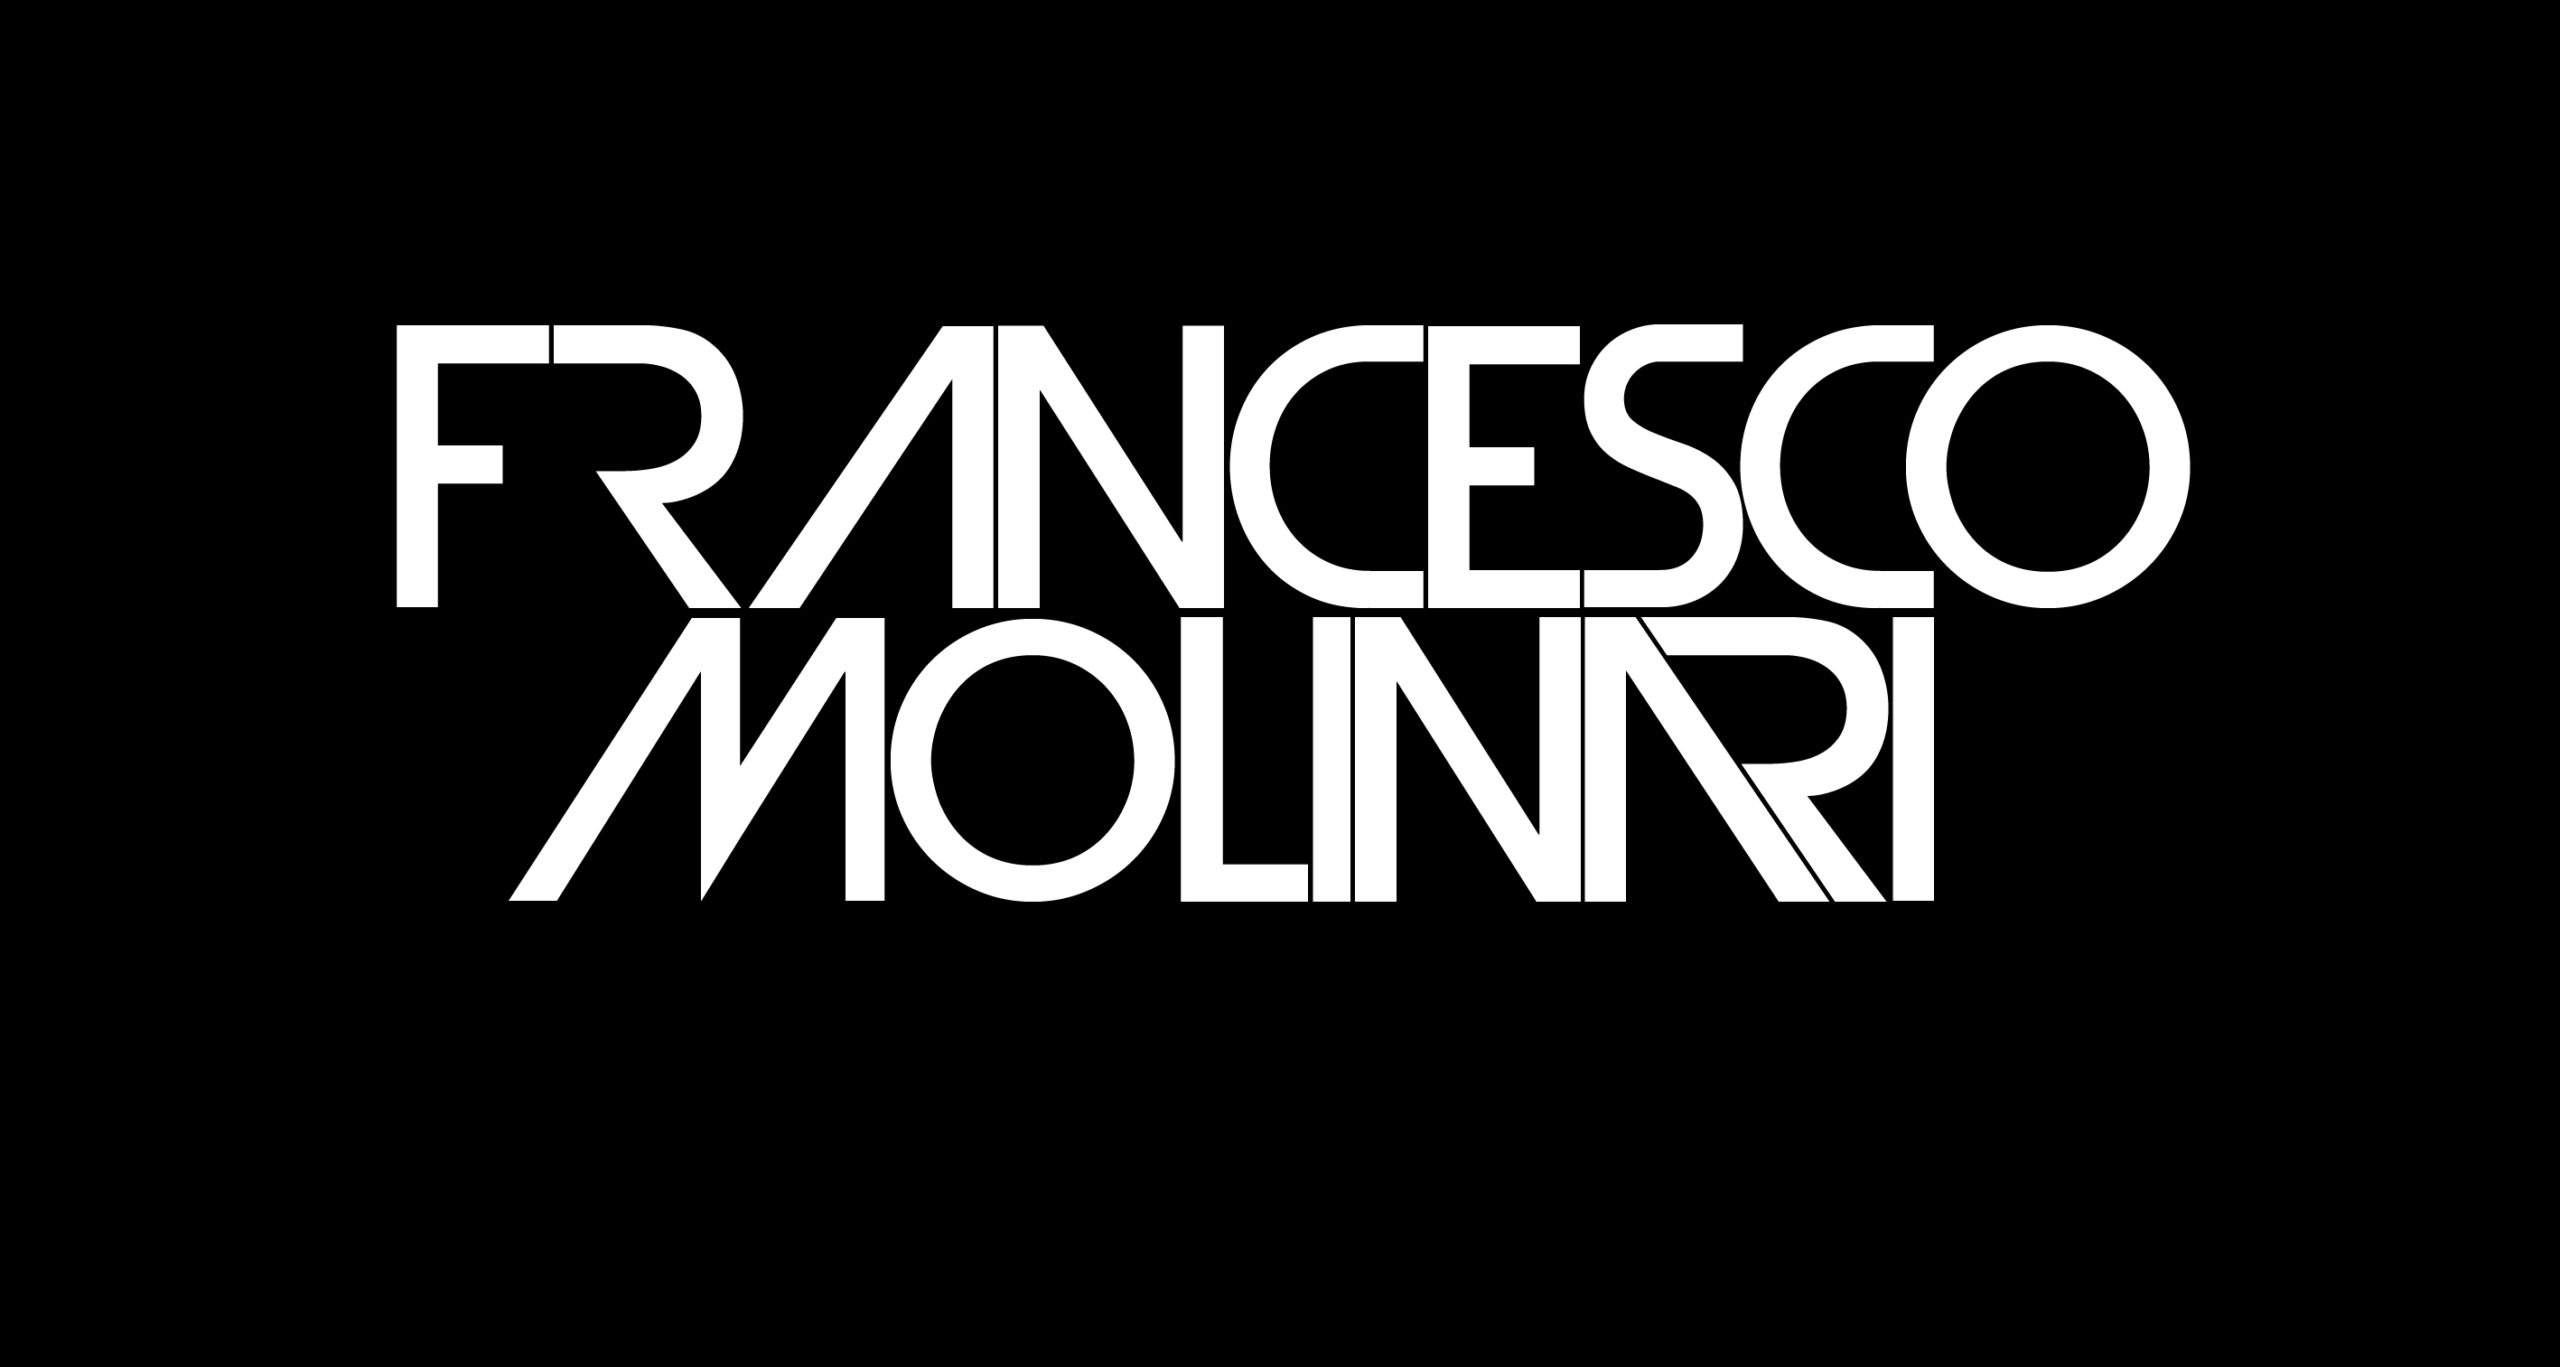 Francesco Molinari DJ - Official Website